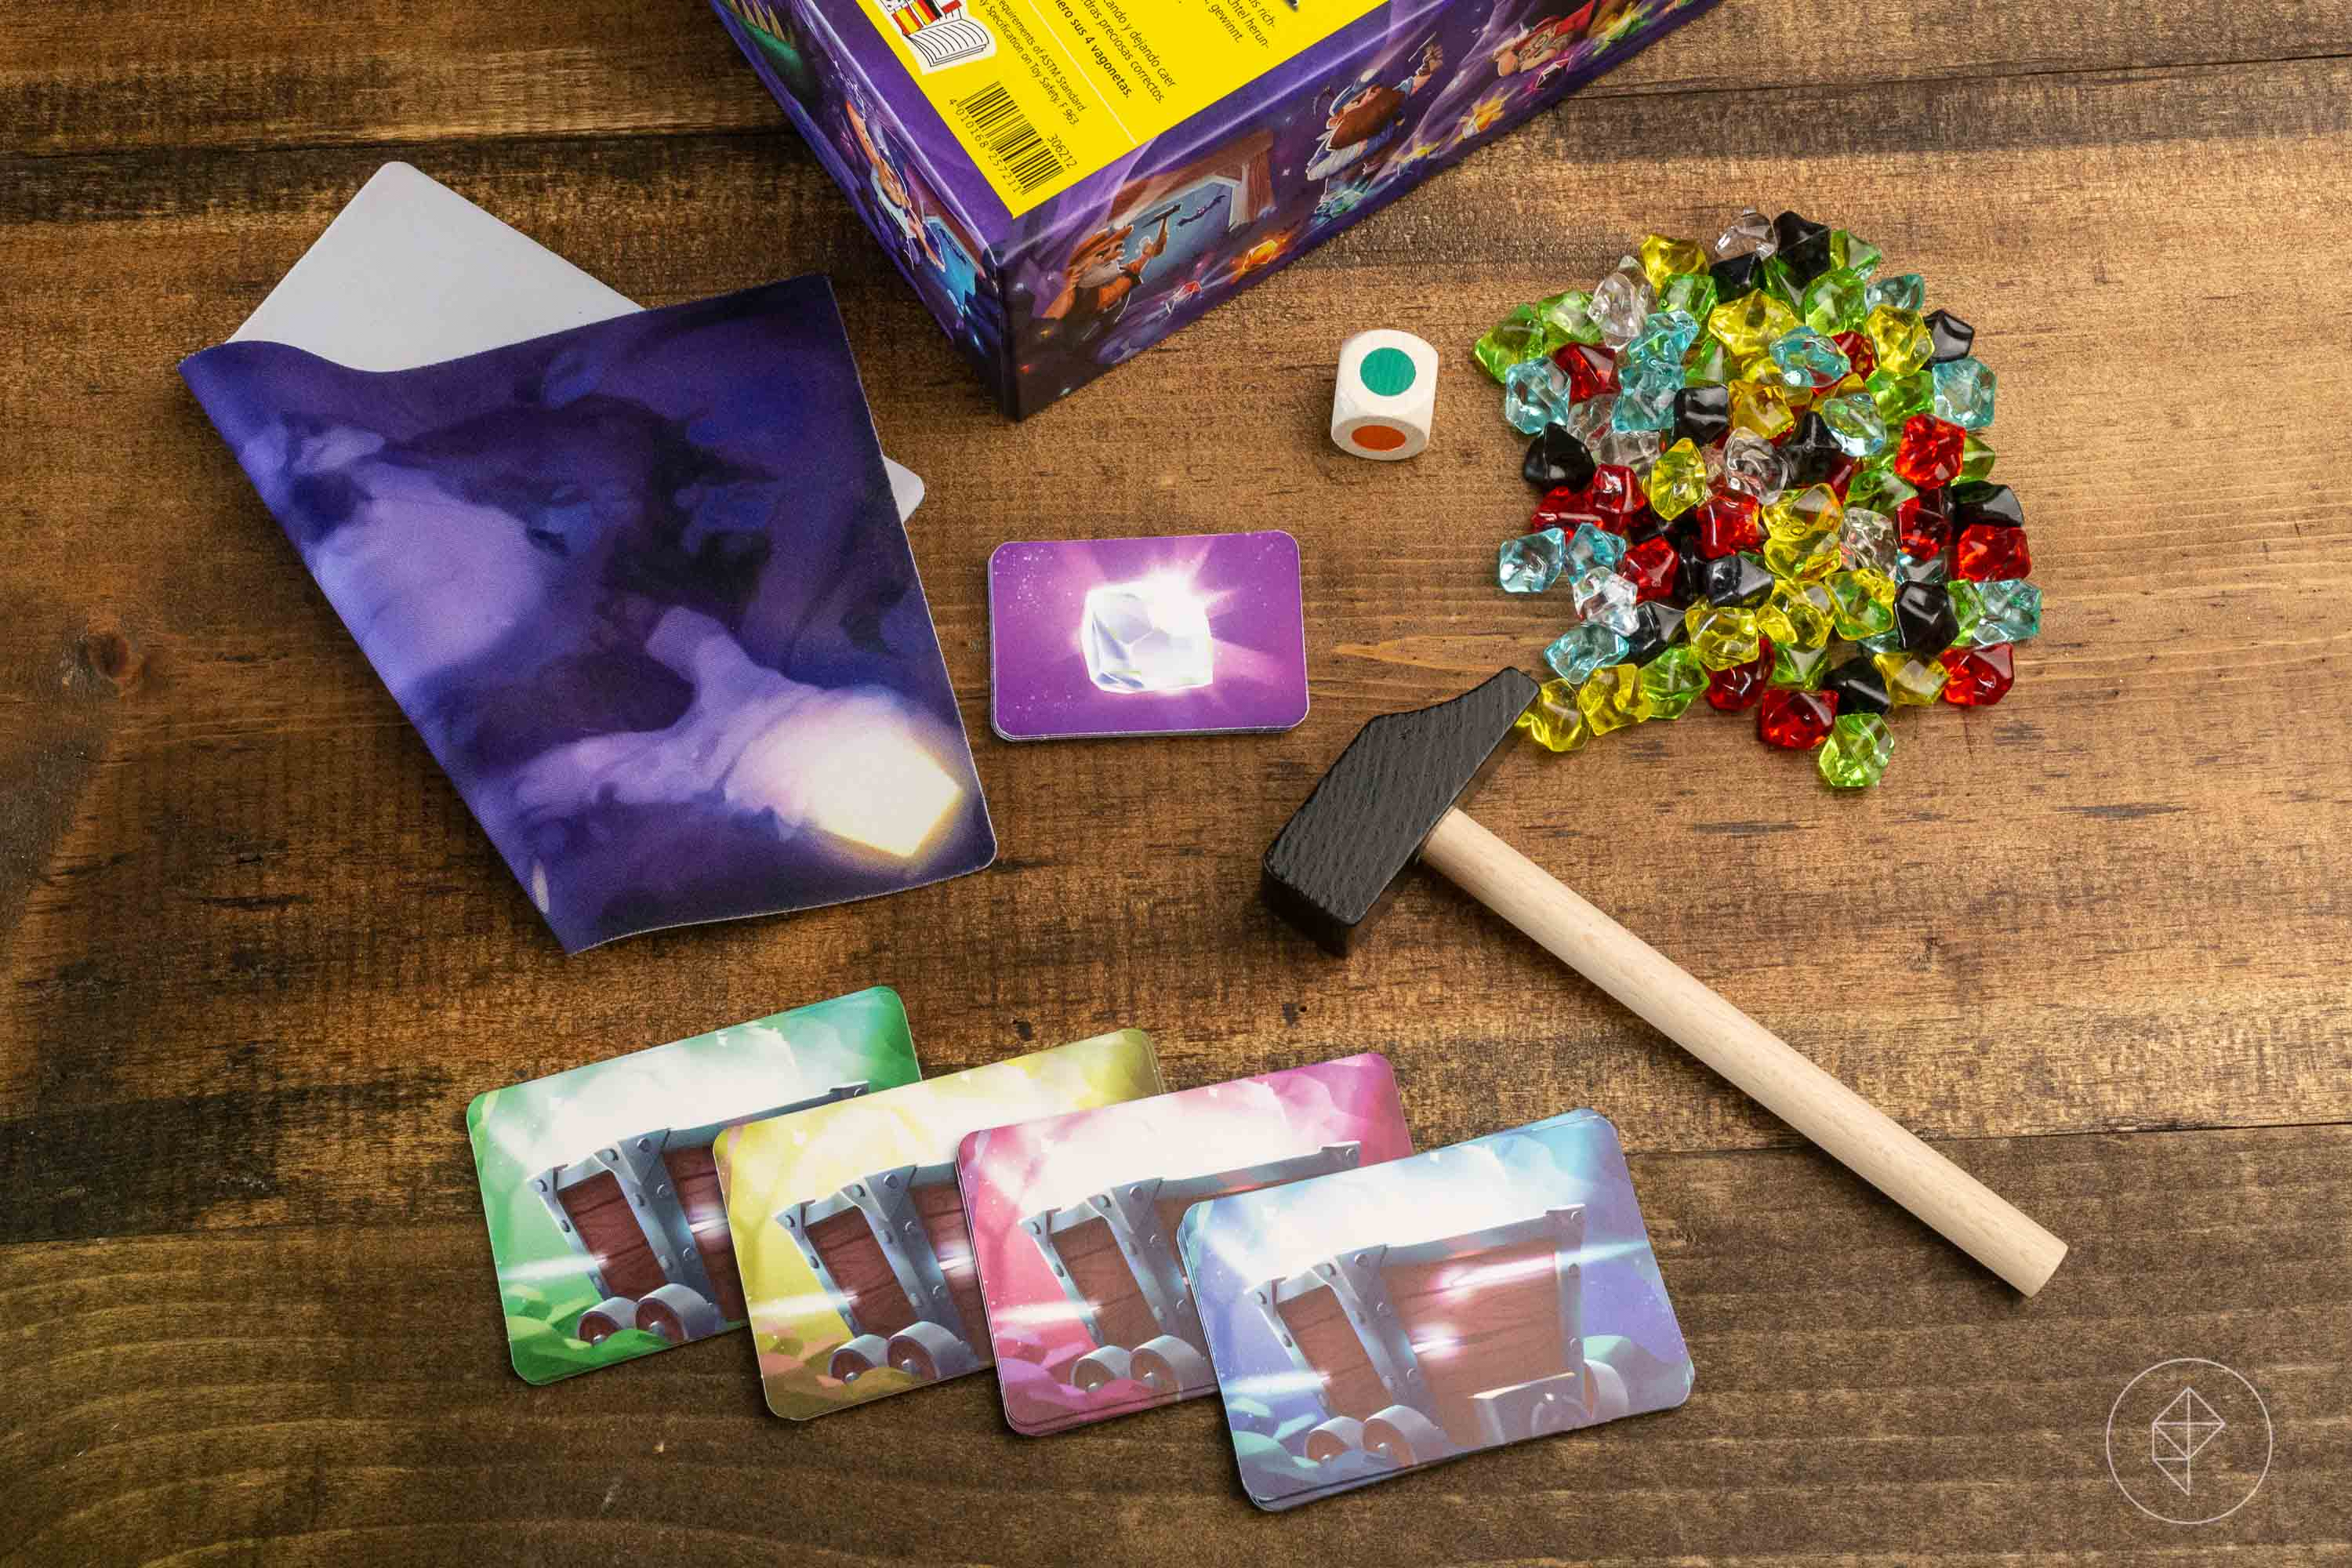 A small wooden hammer, with cards, dice, and plastic gems sitting on a table.